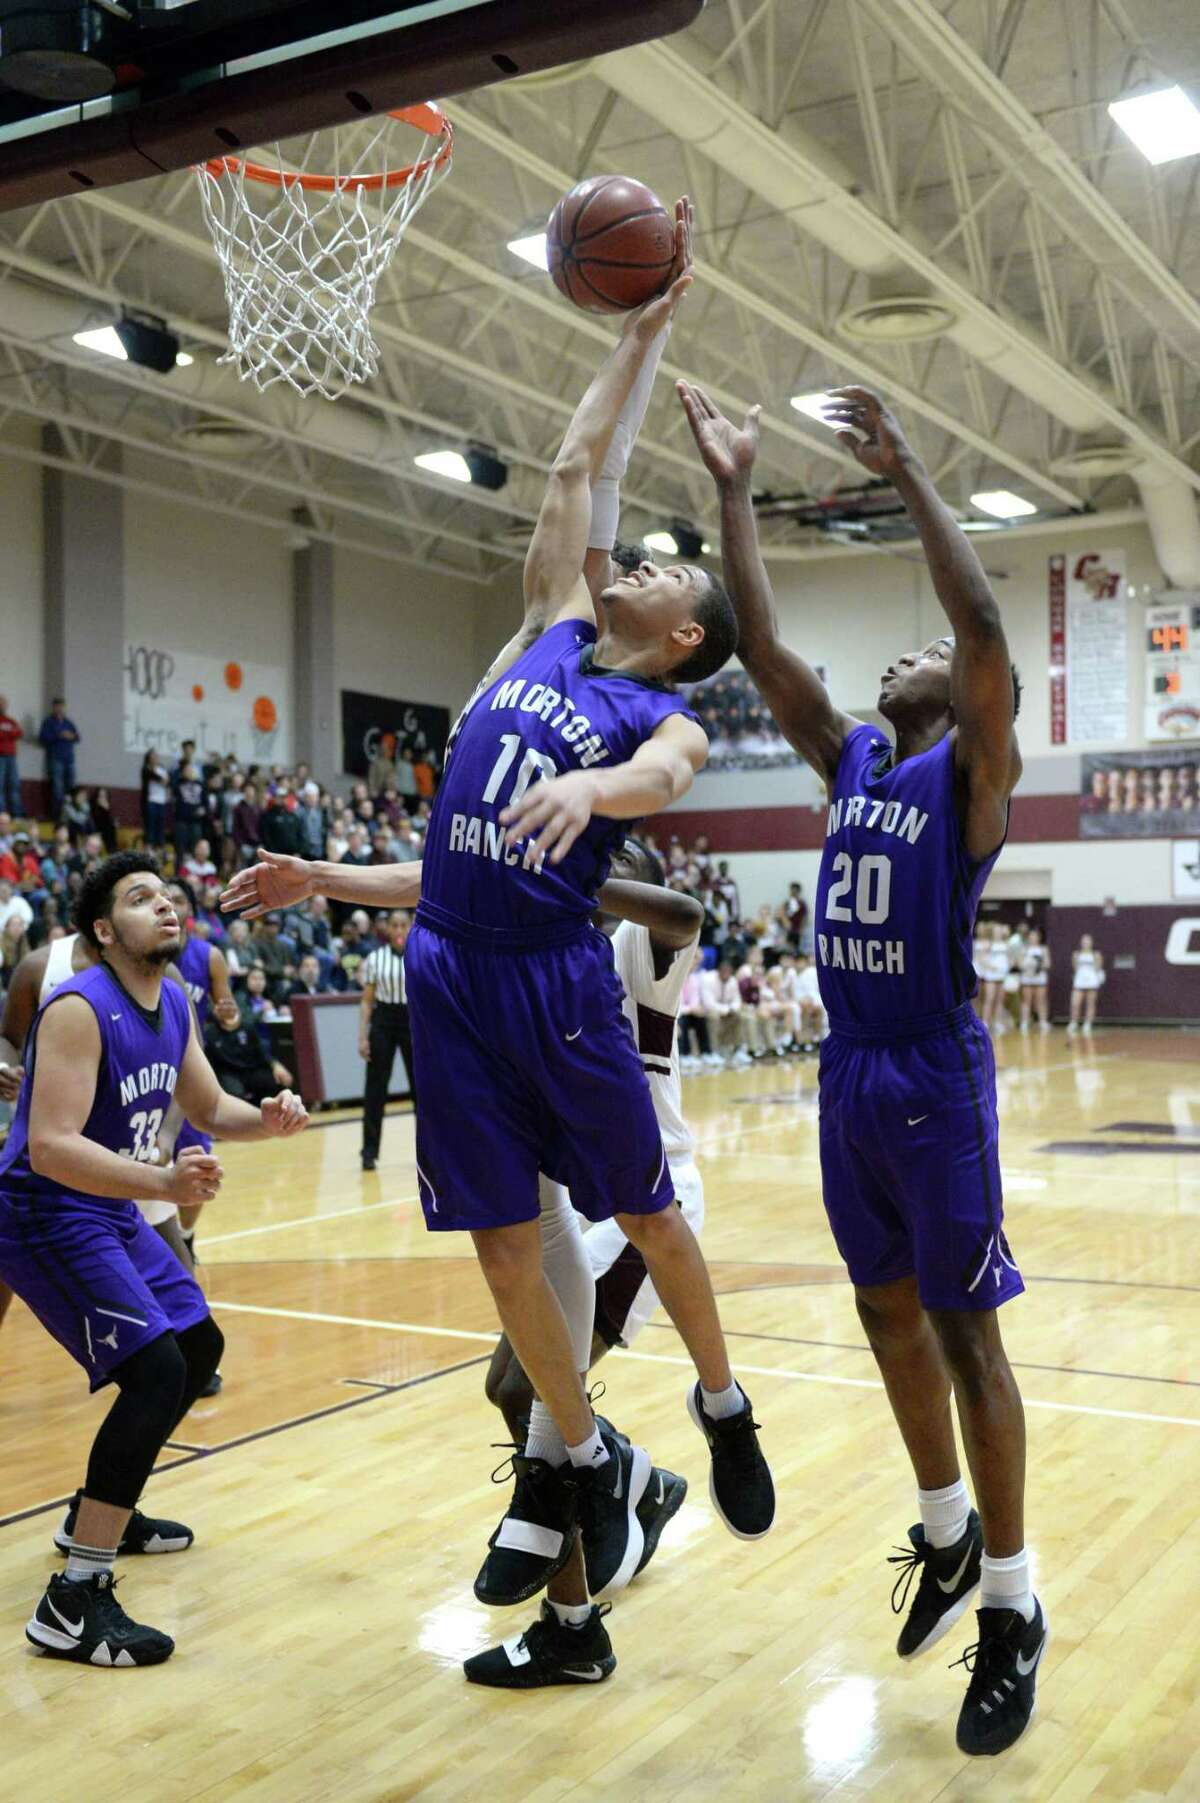 Westley Sellers (10) of Morton Ranch grabs a rebound during the second half of a high school basketball game between the Cinco Ranch Cougars and the Morton Ranch Mavericks on Jan. 29.